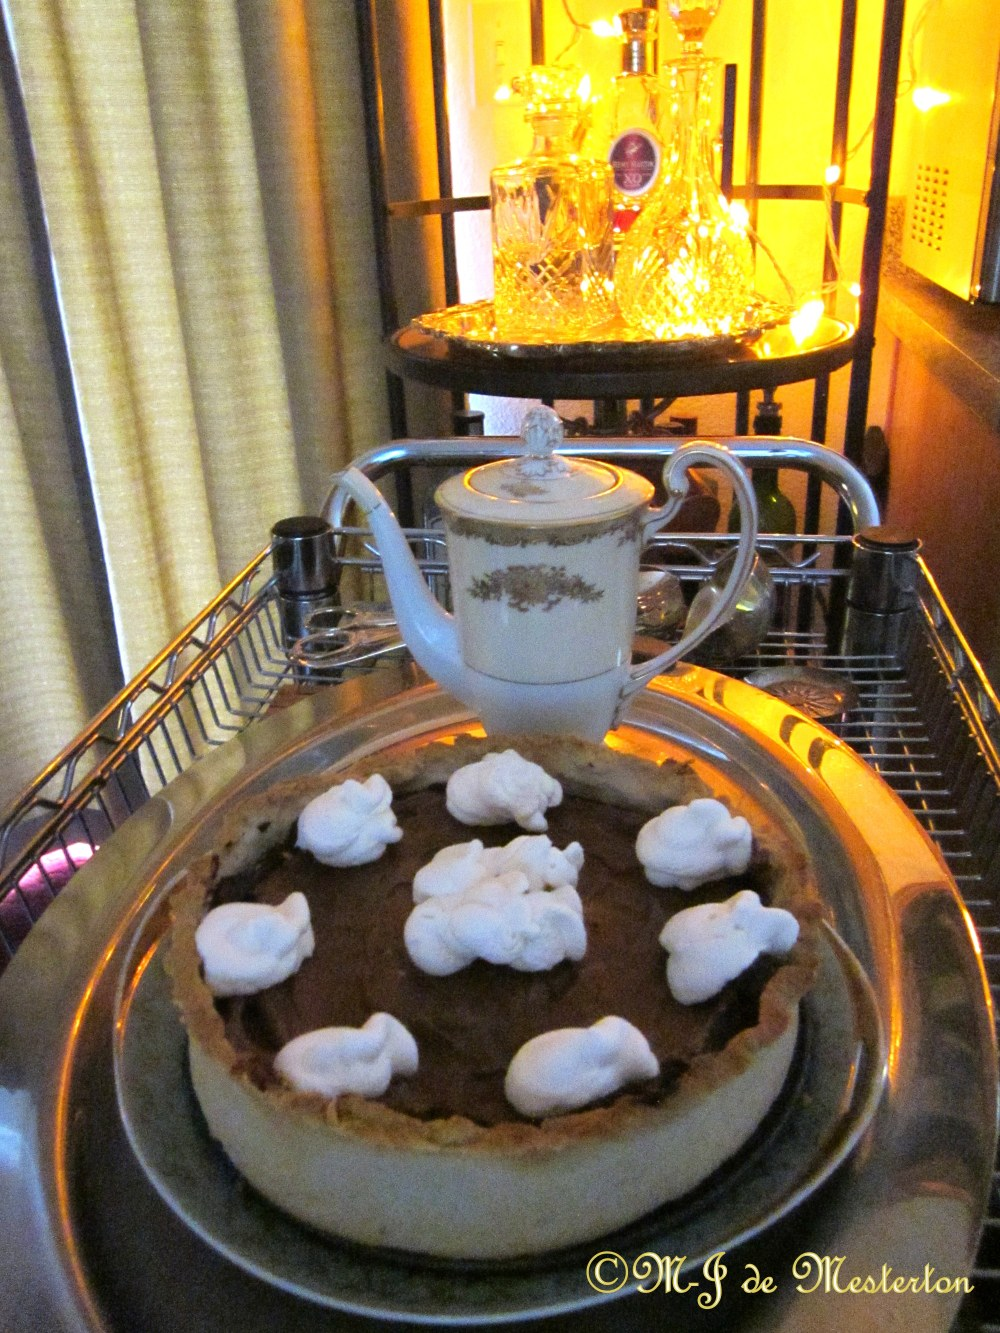 Chocolate Mousse Pie with Short Crust and Whipped Cream ©M-J de Mesterton 2015